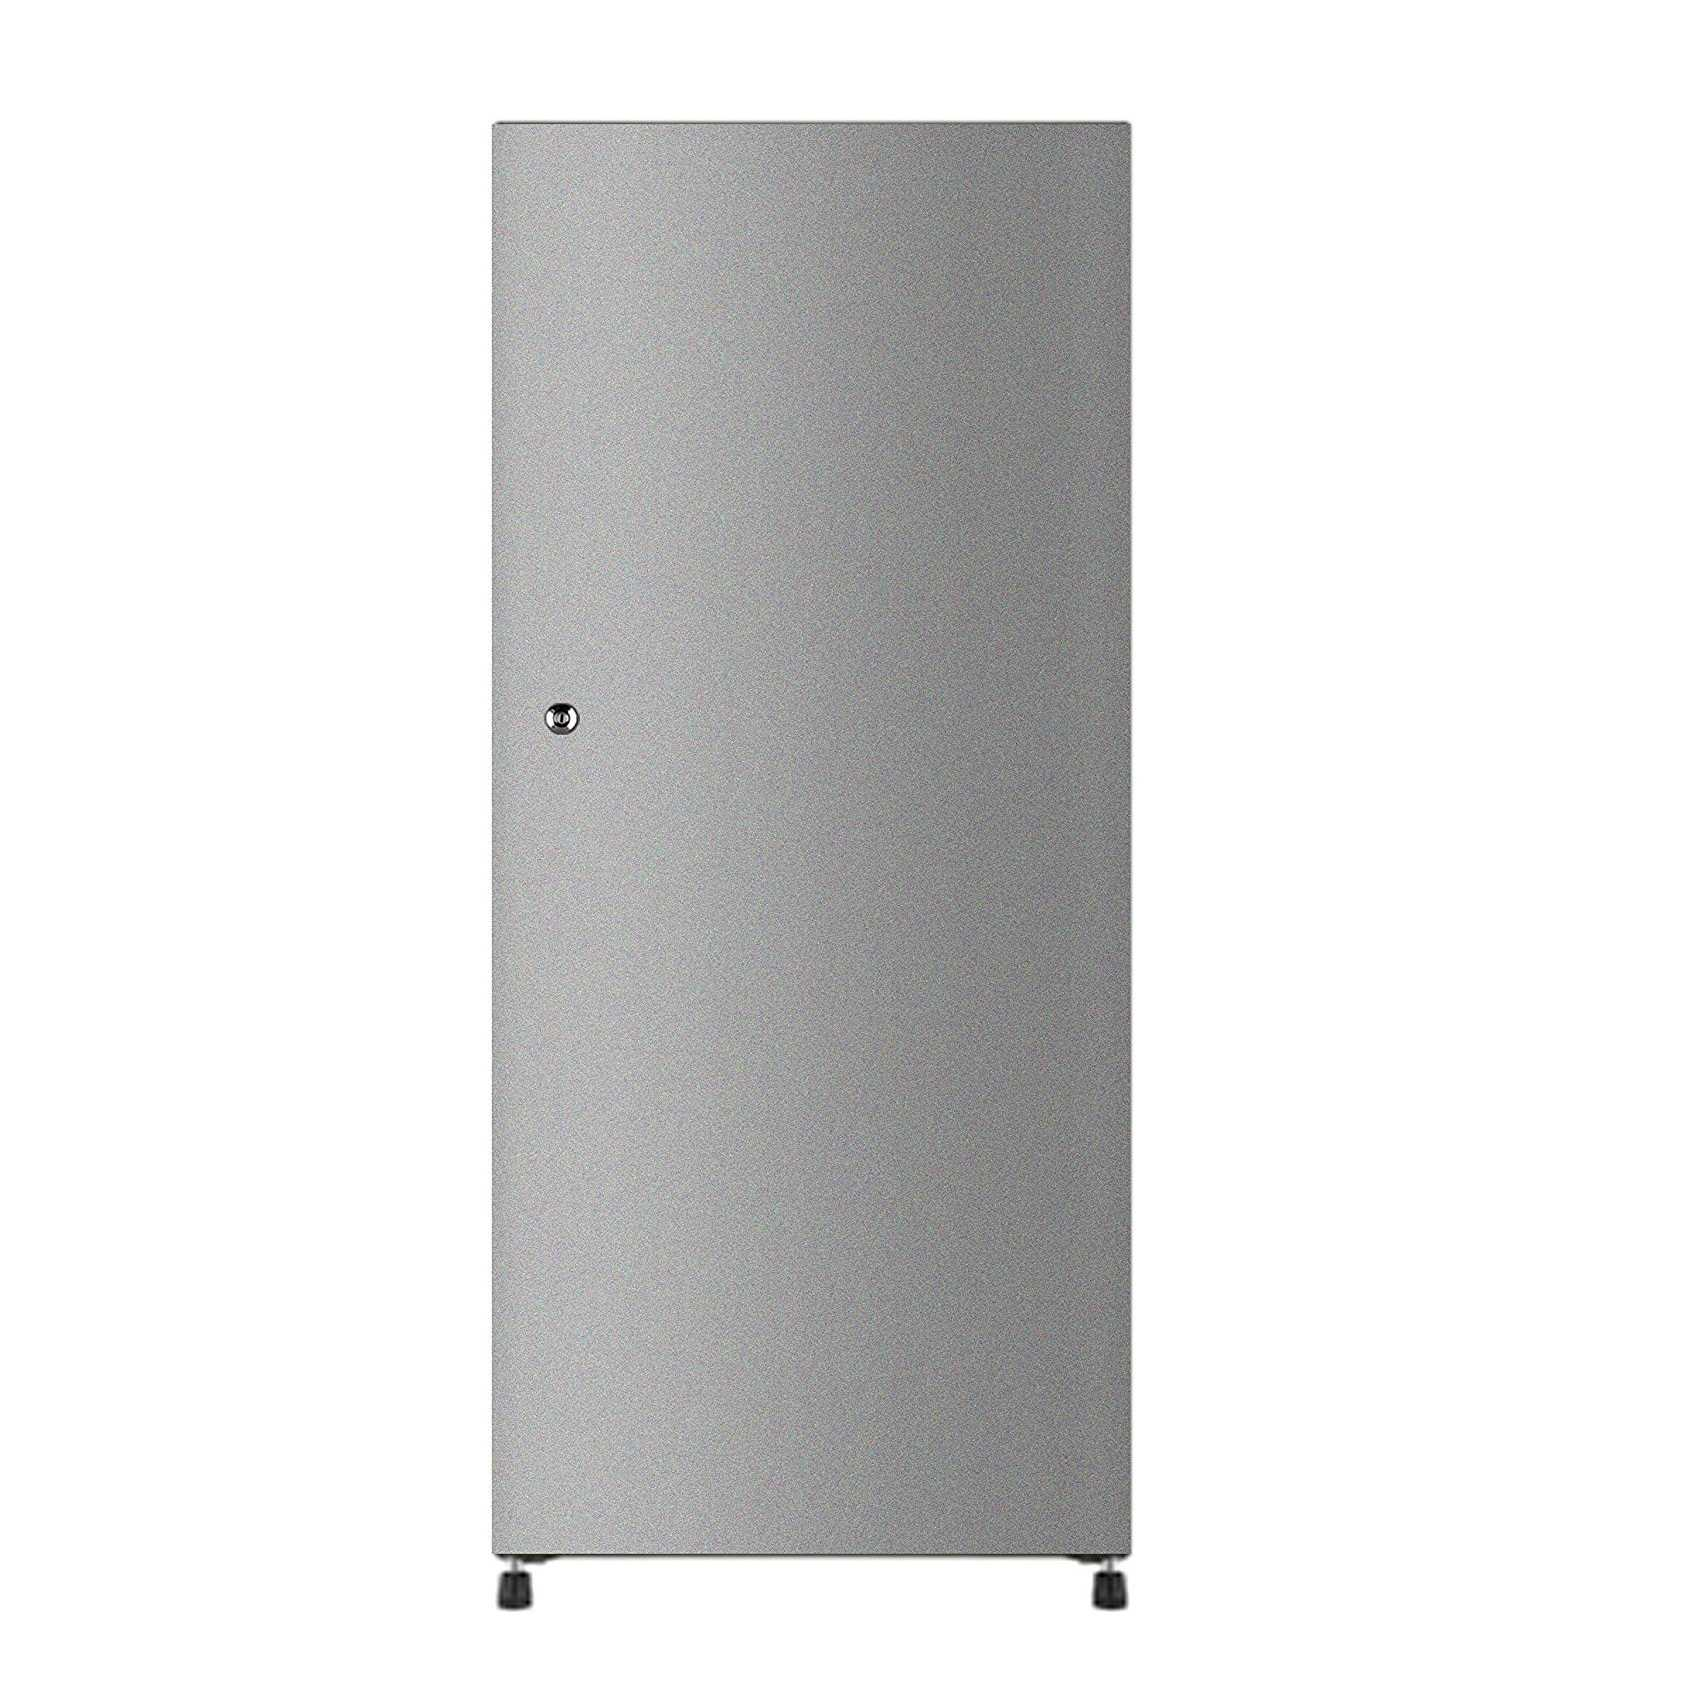 Haier HRD 1953SMS R 195 Litres Single Door Direct Cool Refrigerator